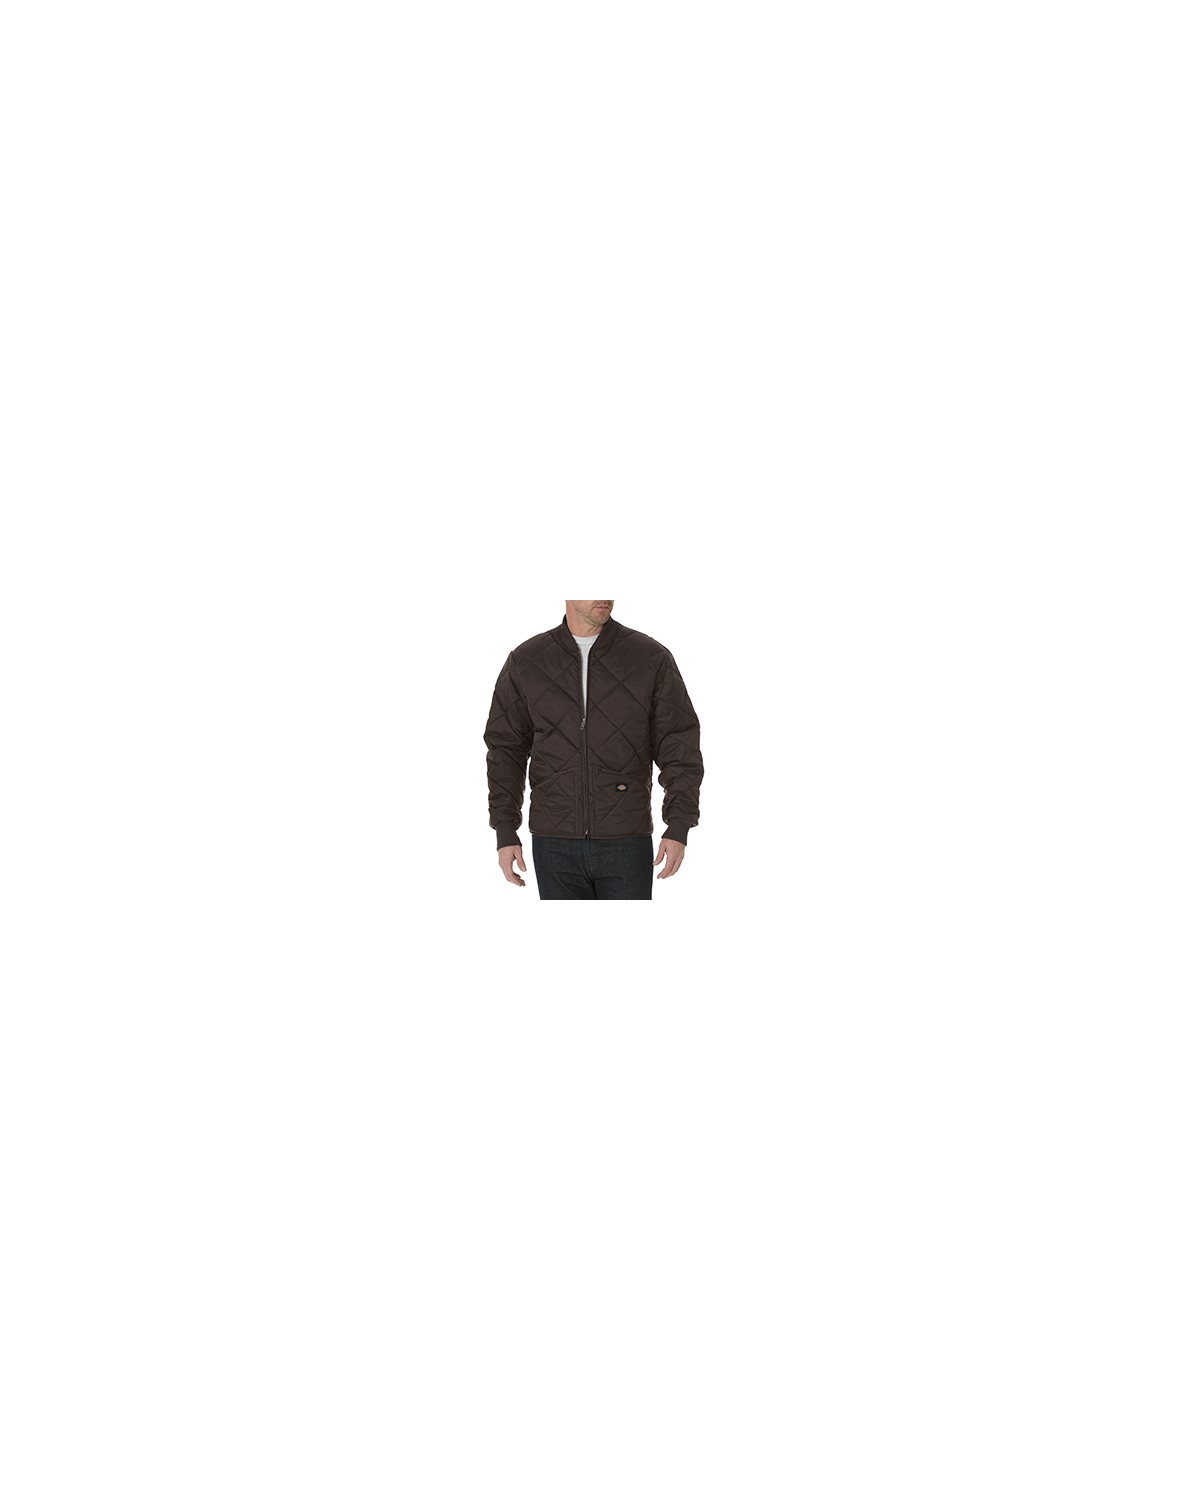 61242 Dickies Drop Ship CHOCOLATE BROWN